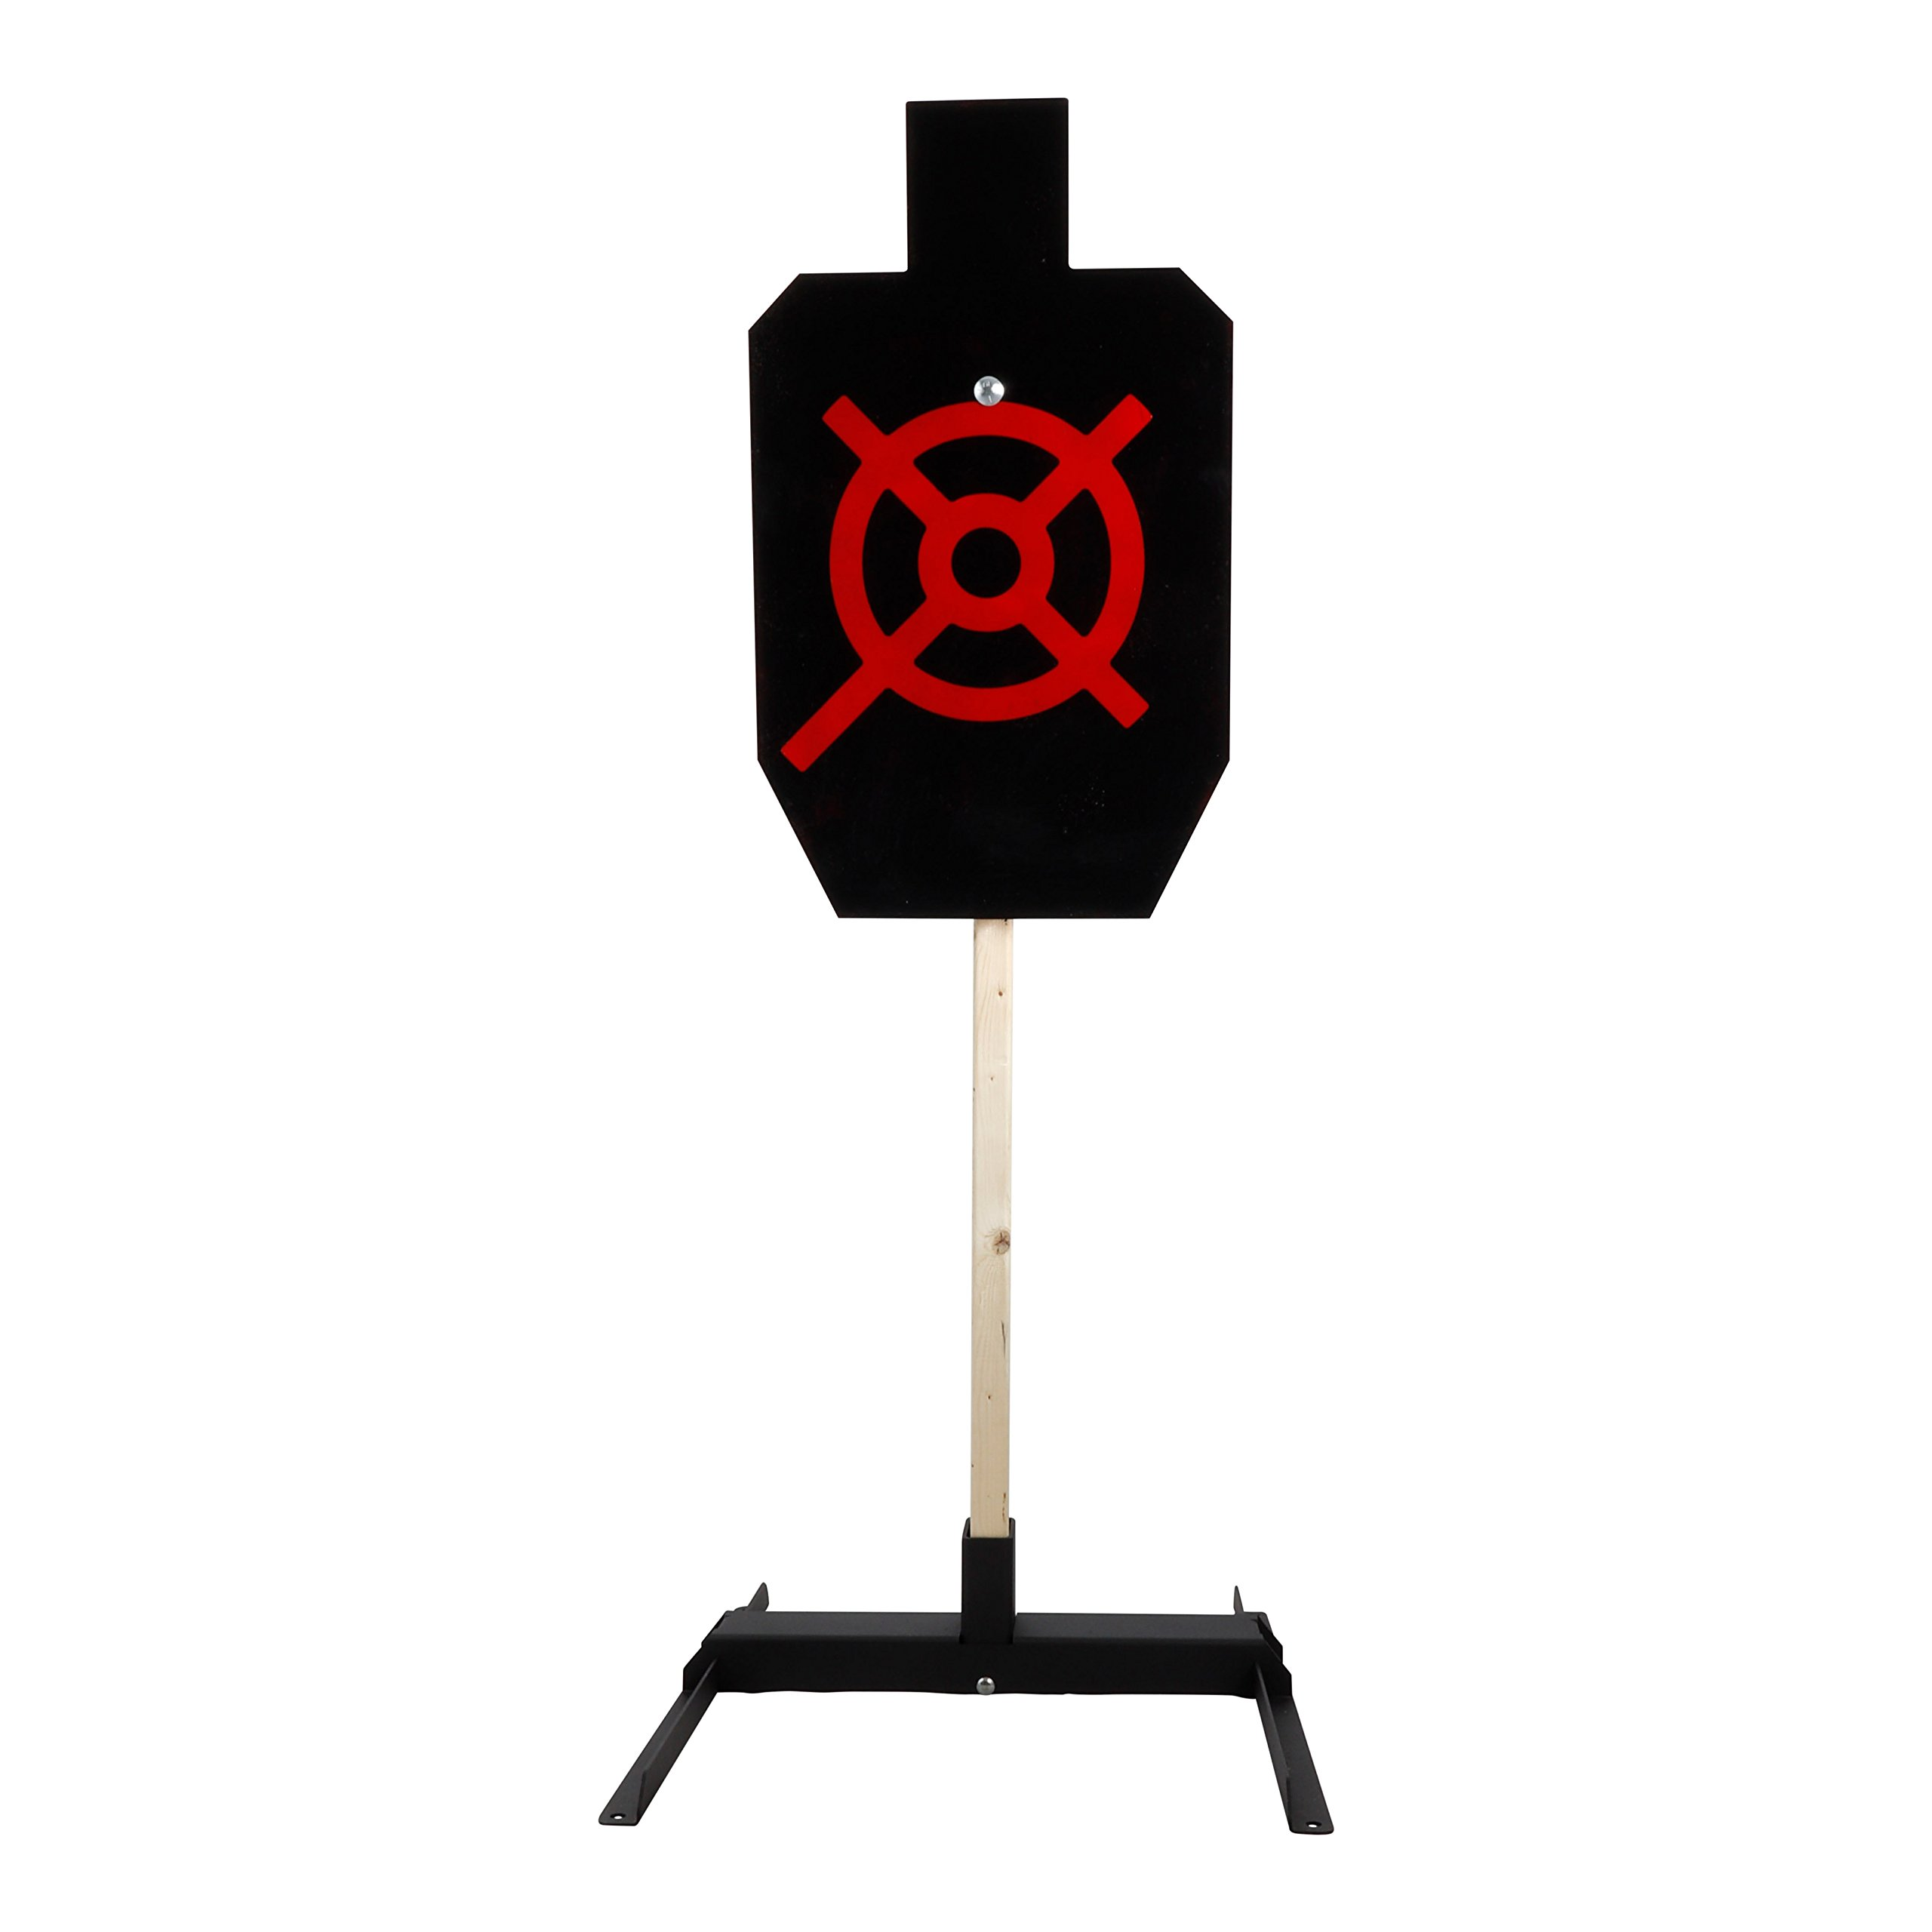 ShootingTargets7 IPSC Full Size Static Torso 1/4 inch AR500 + Base + Cap 18 x 30 inch for Pistols and Handguns by ShootingTargets7